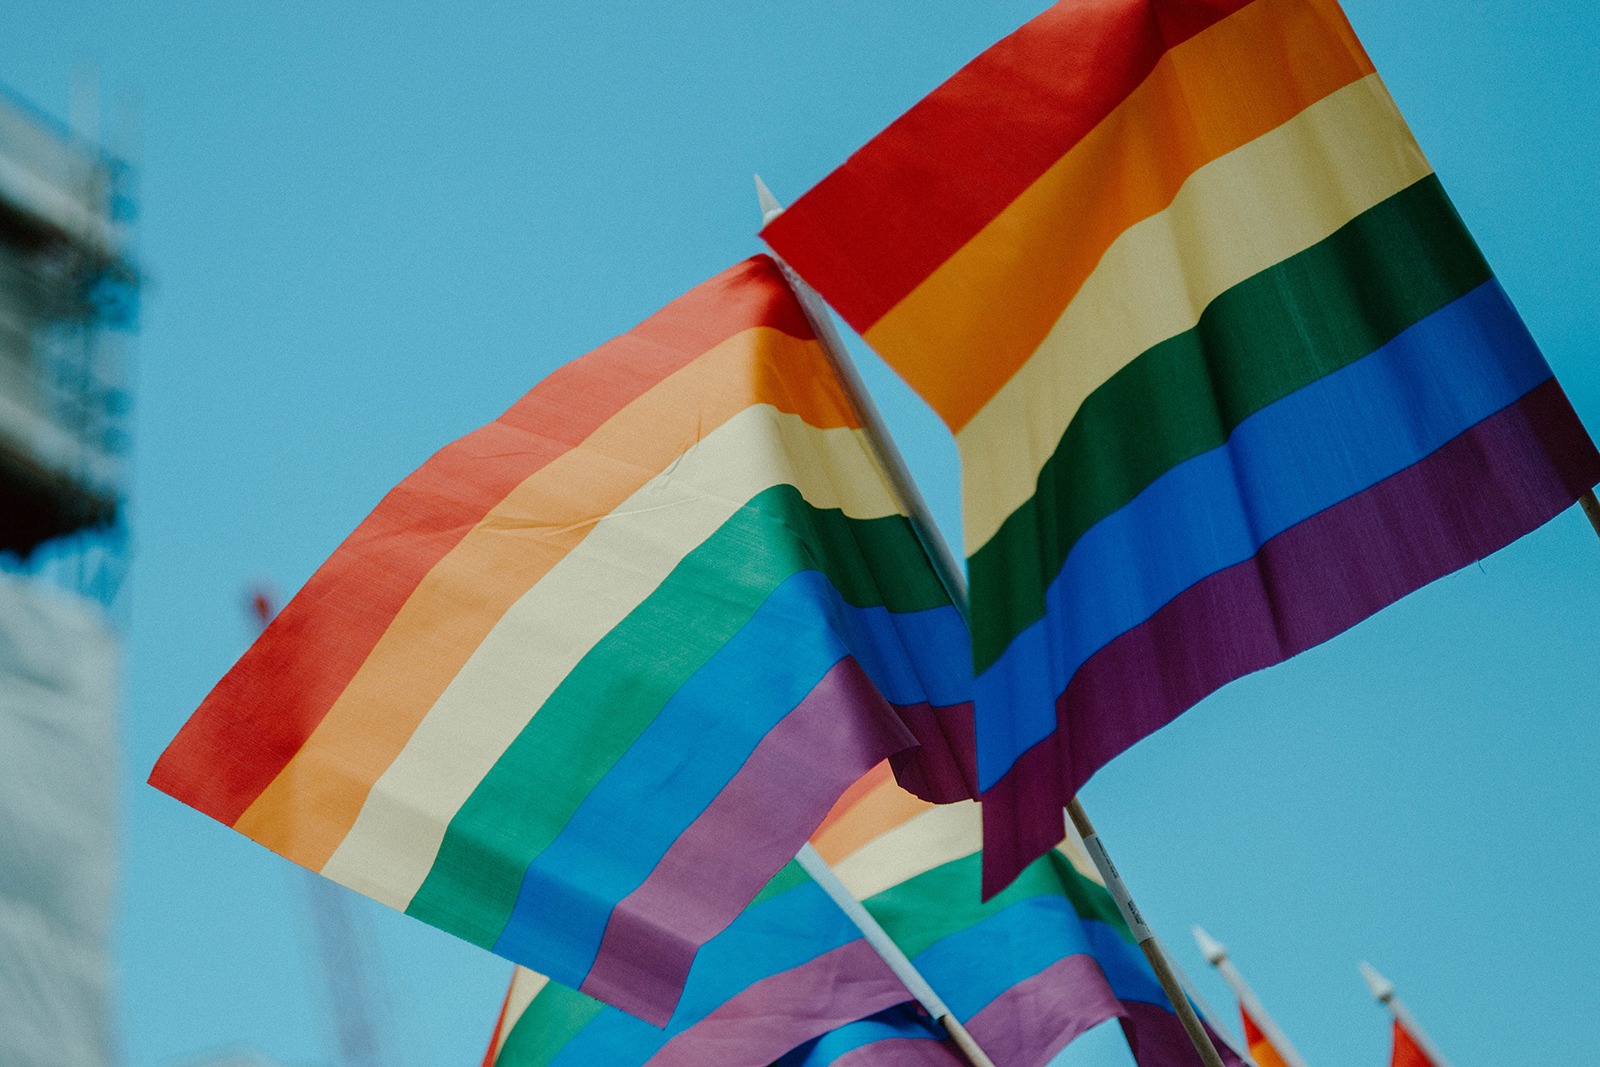 What's in store for the Equality Act, and why do some religions want a revision?